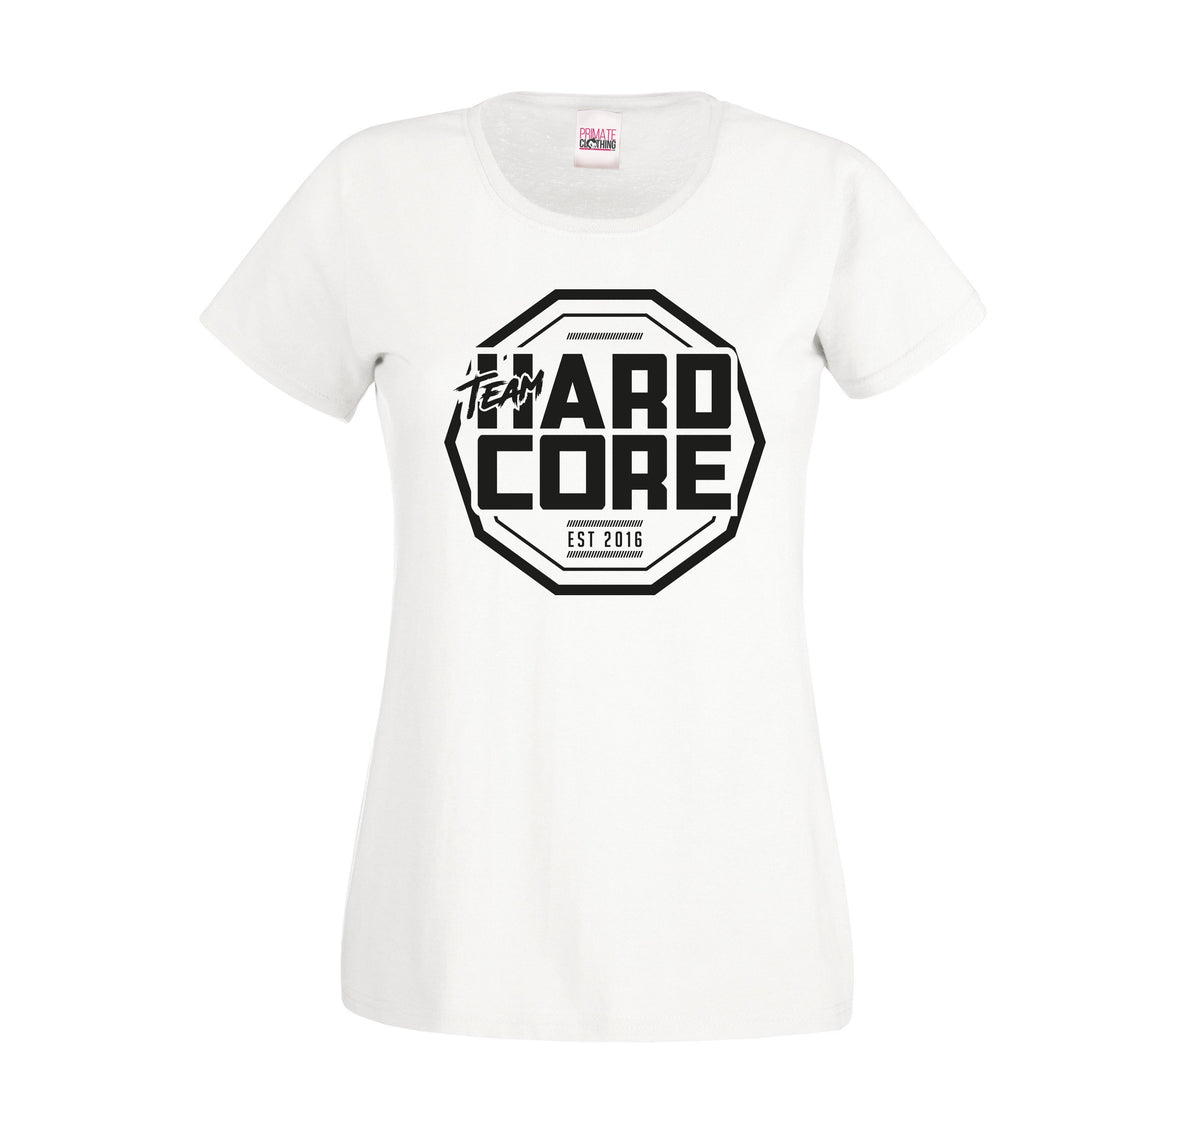 Team Hardcore Women's T-Shirt - White & Black Team Hardcore Small